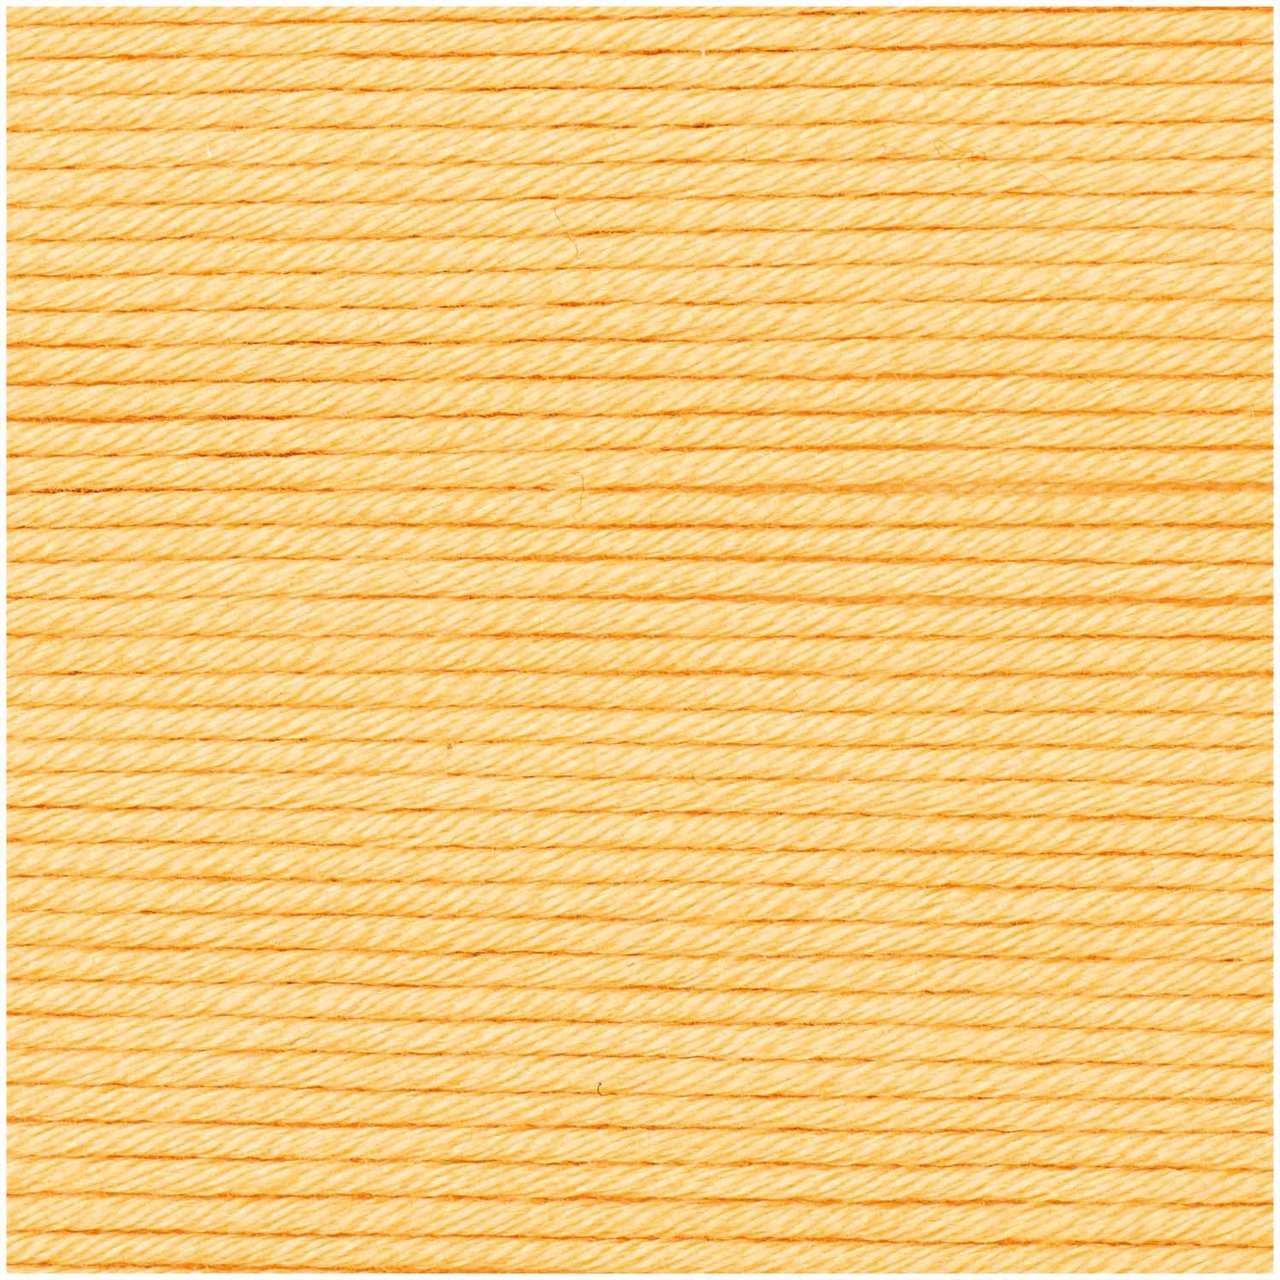 Rico Design Essentials Cotton dk 50g 120m banane von Rico Design